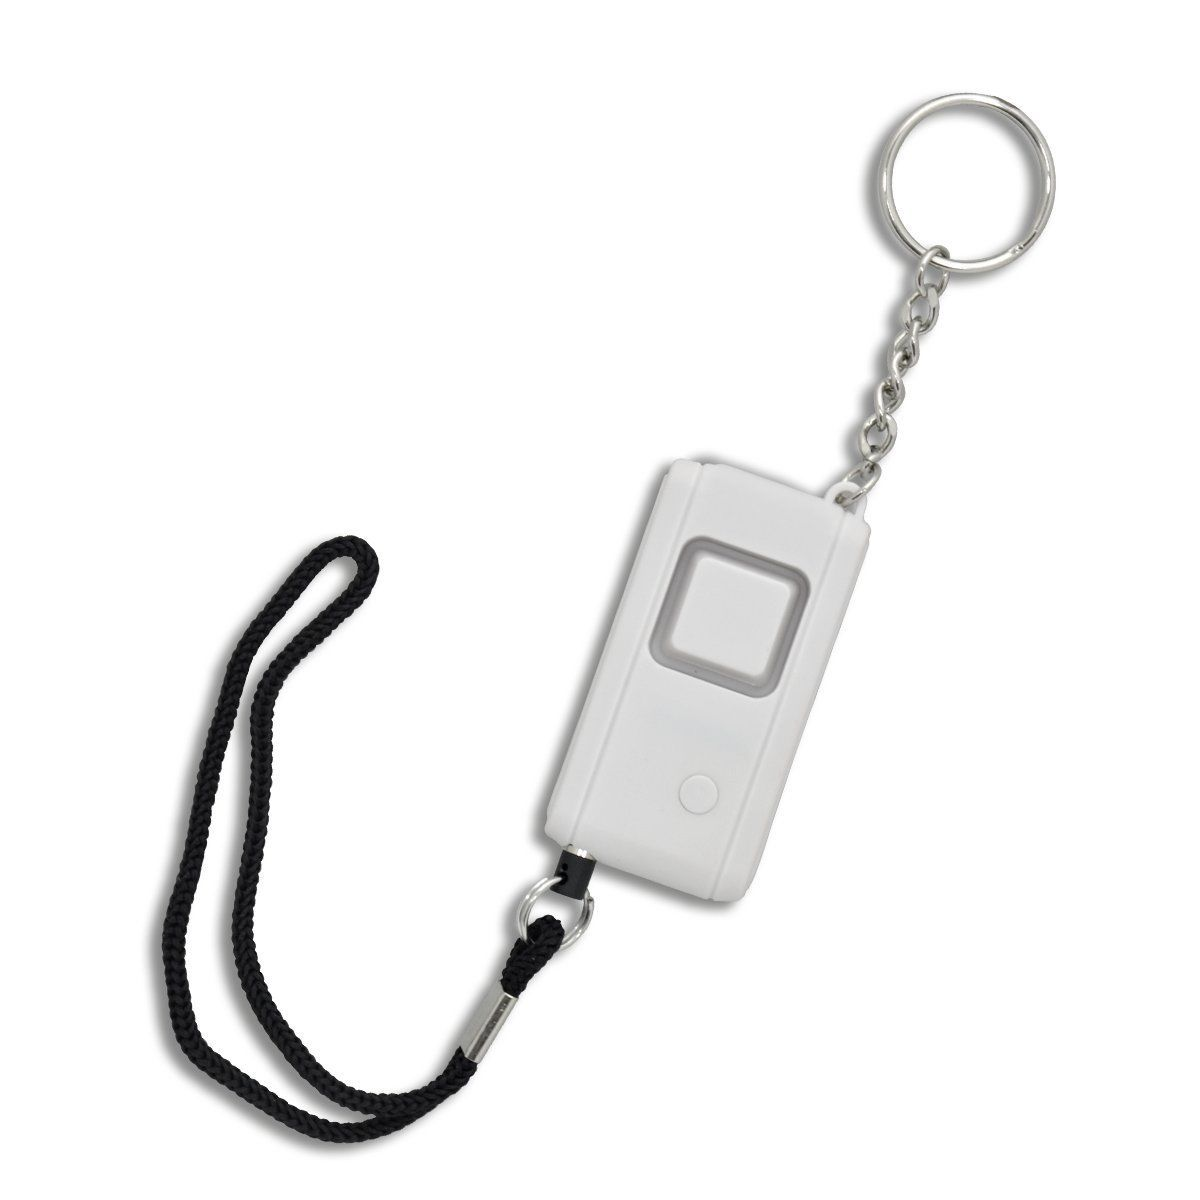 Personal Security Keychain Alarm (EA01)